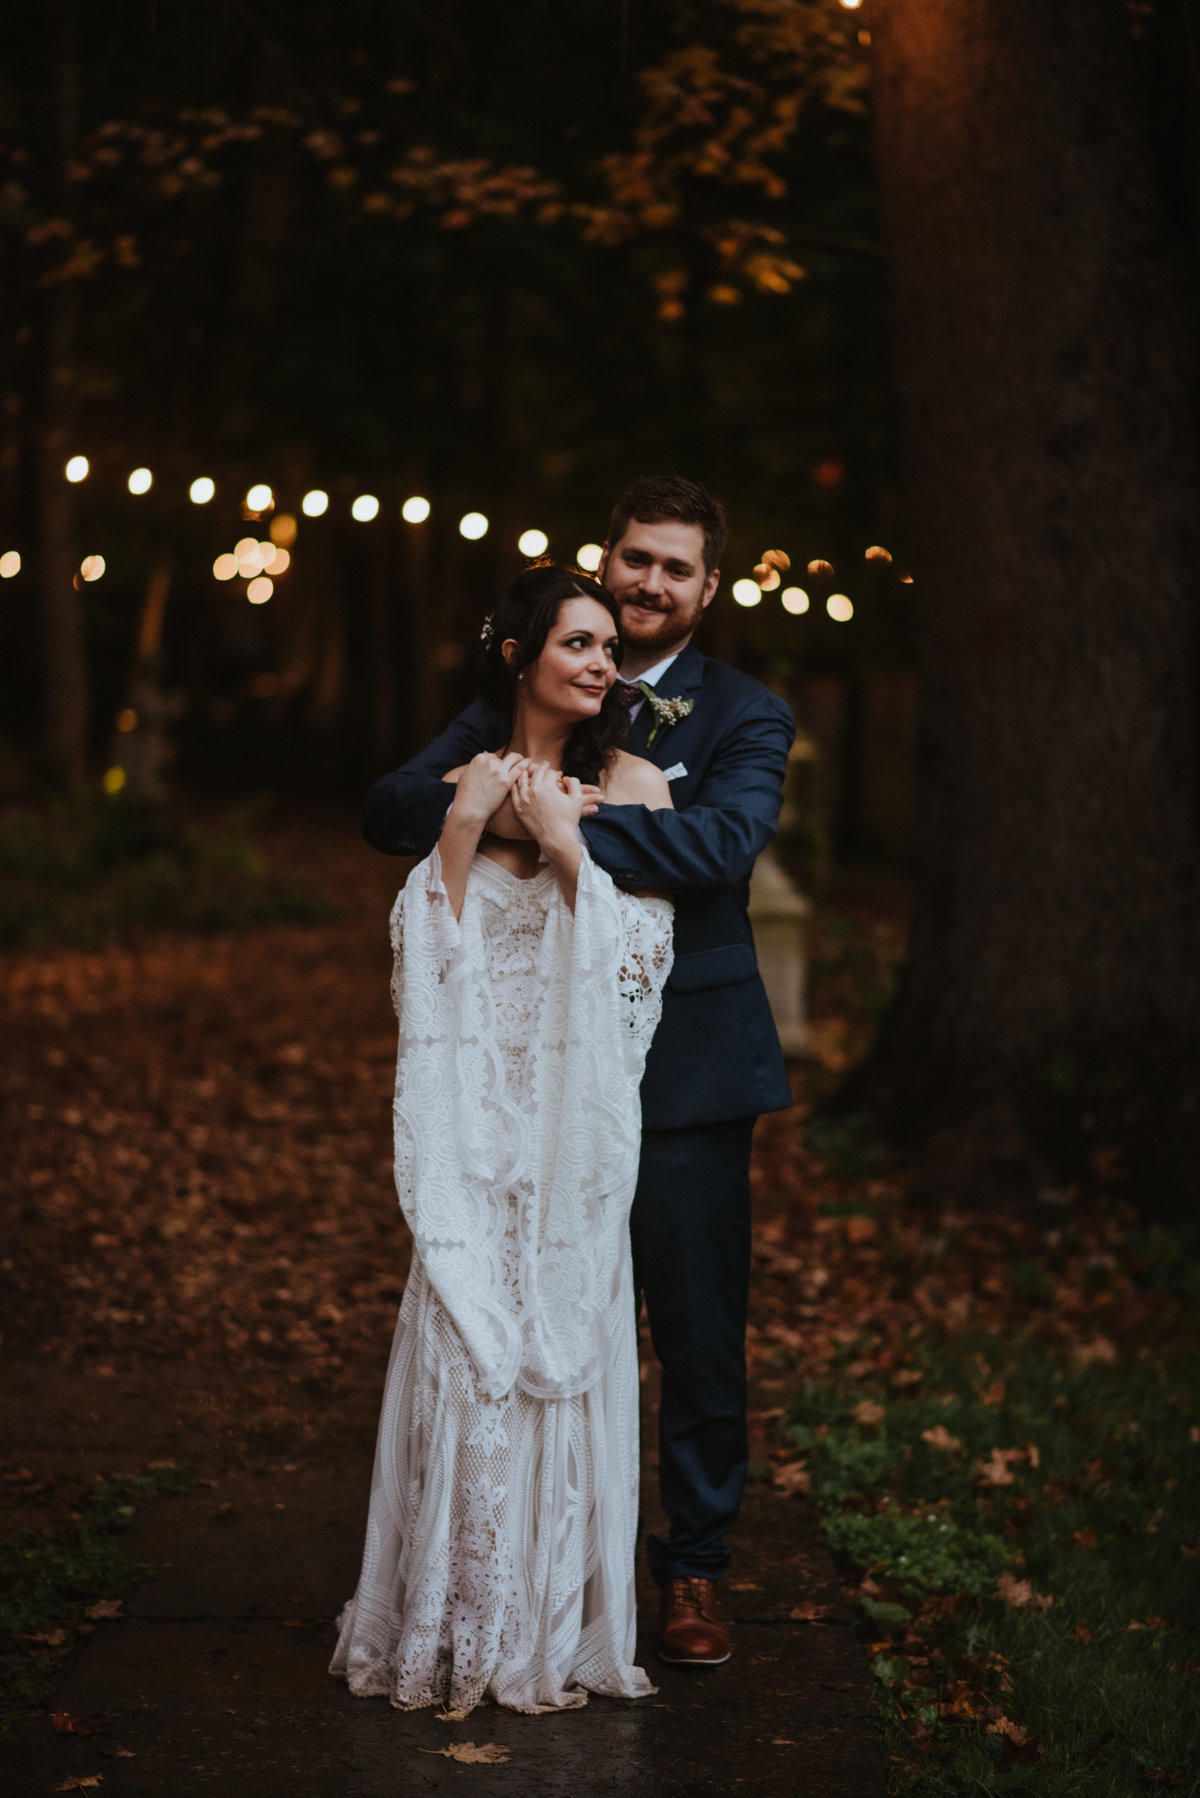 CatskillsJulietandEric2019WeddingPhotography (136 of 213)